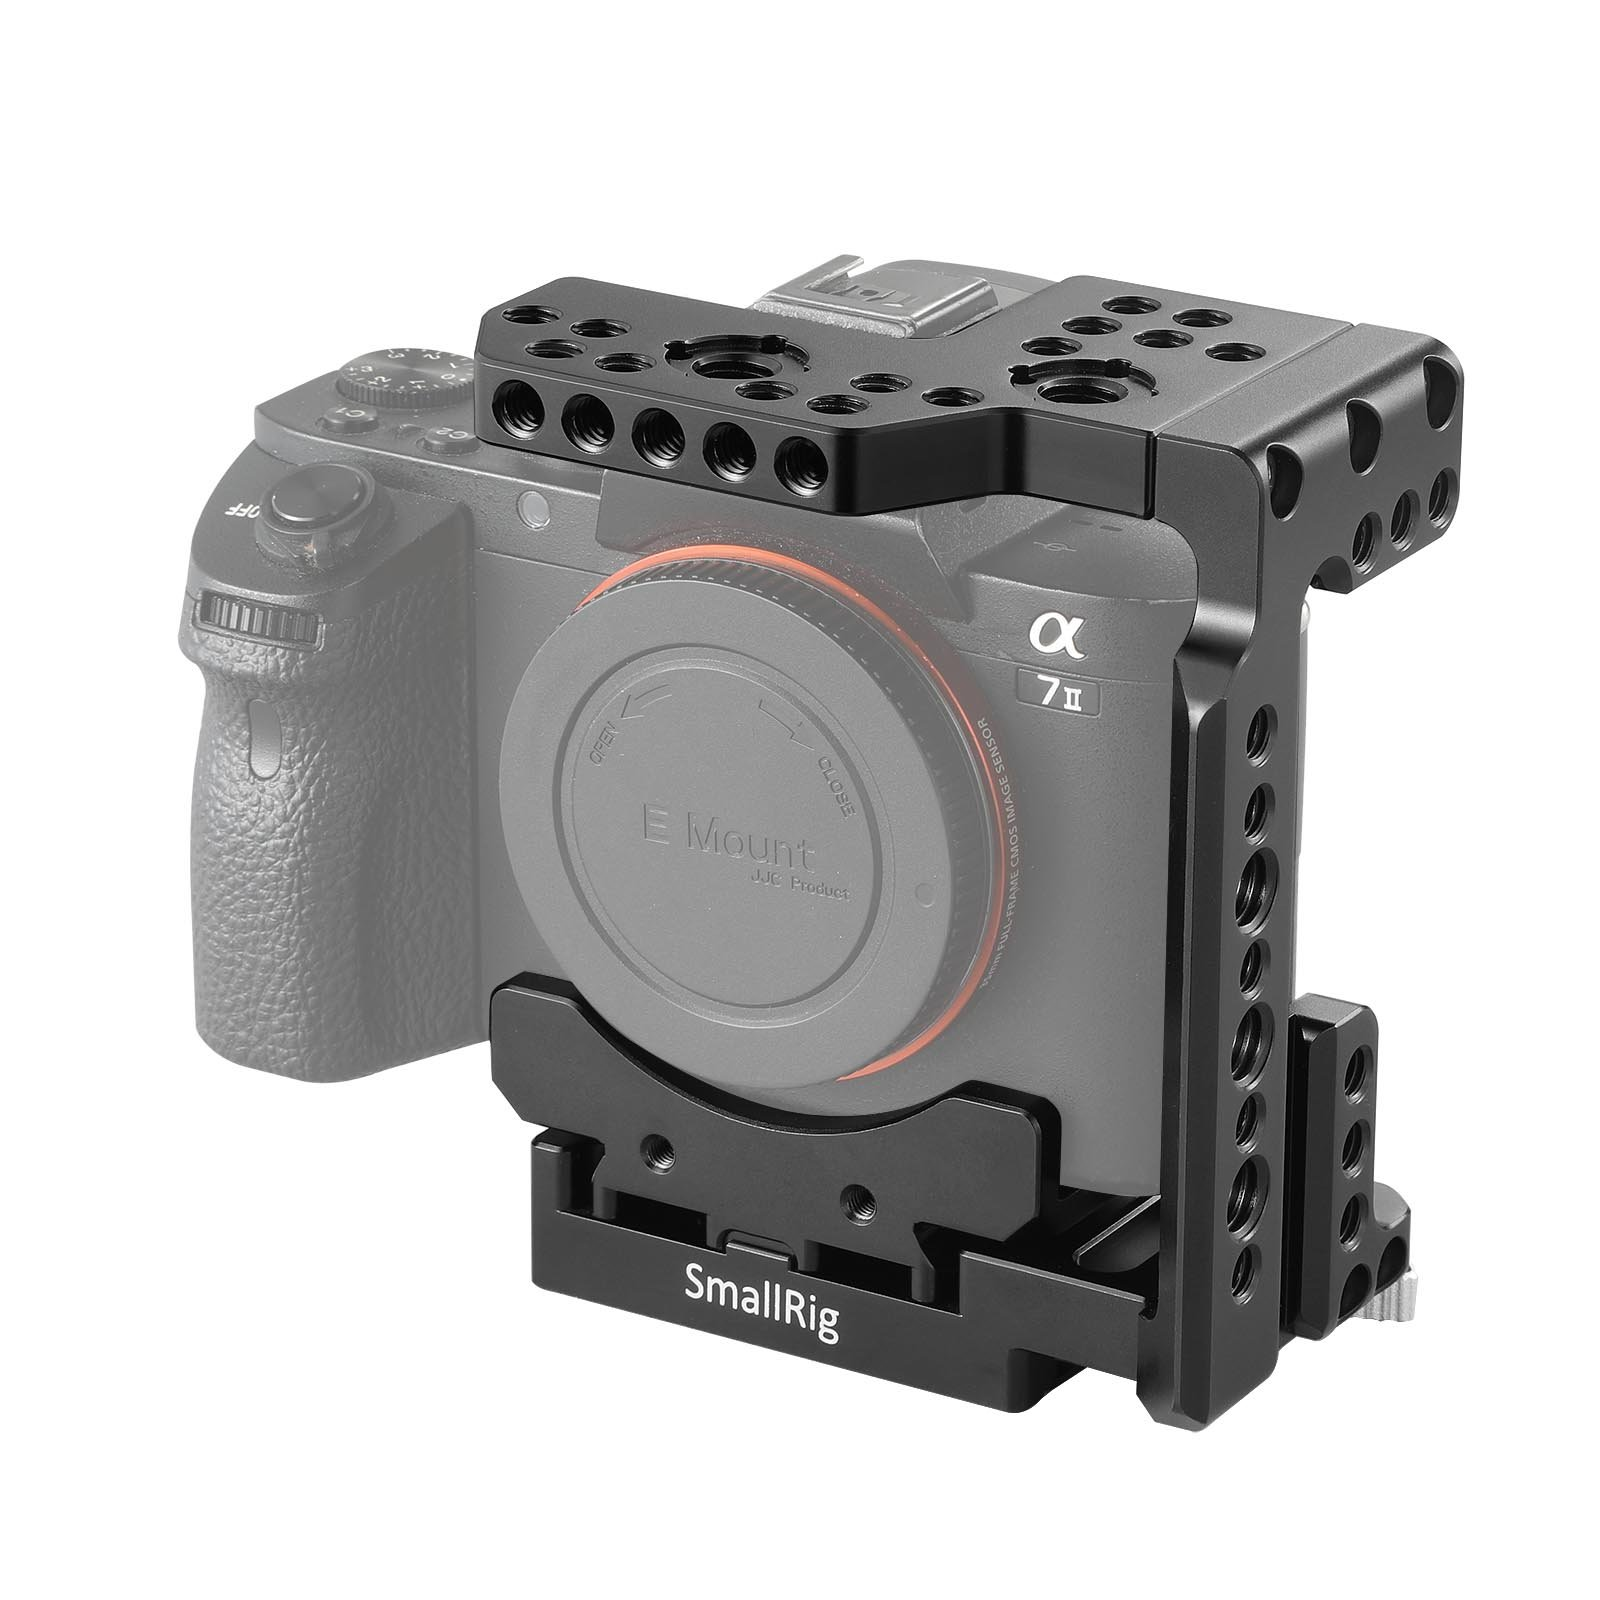 SMALLRIG Quick Release Half Cage for Sony A7R III/A7 III/A7 II/A7R II/A7S II - 2098 by SMALLRIG